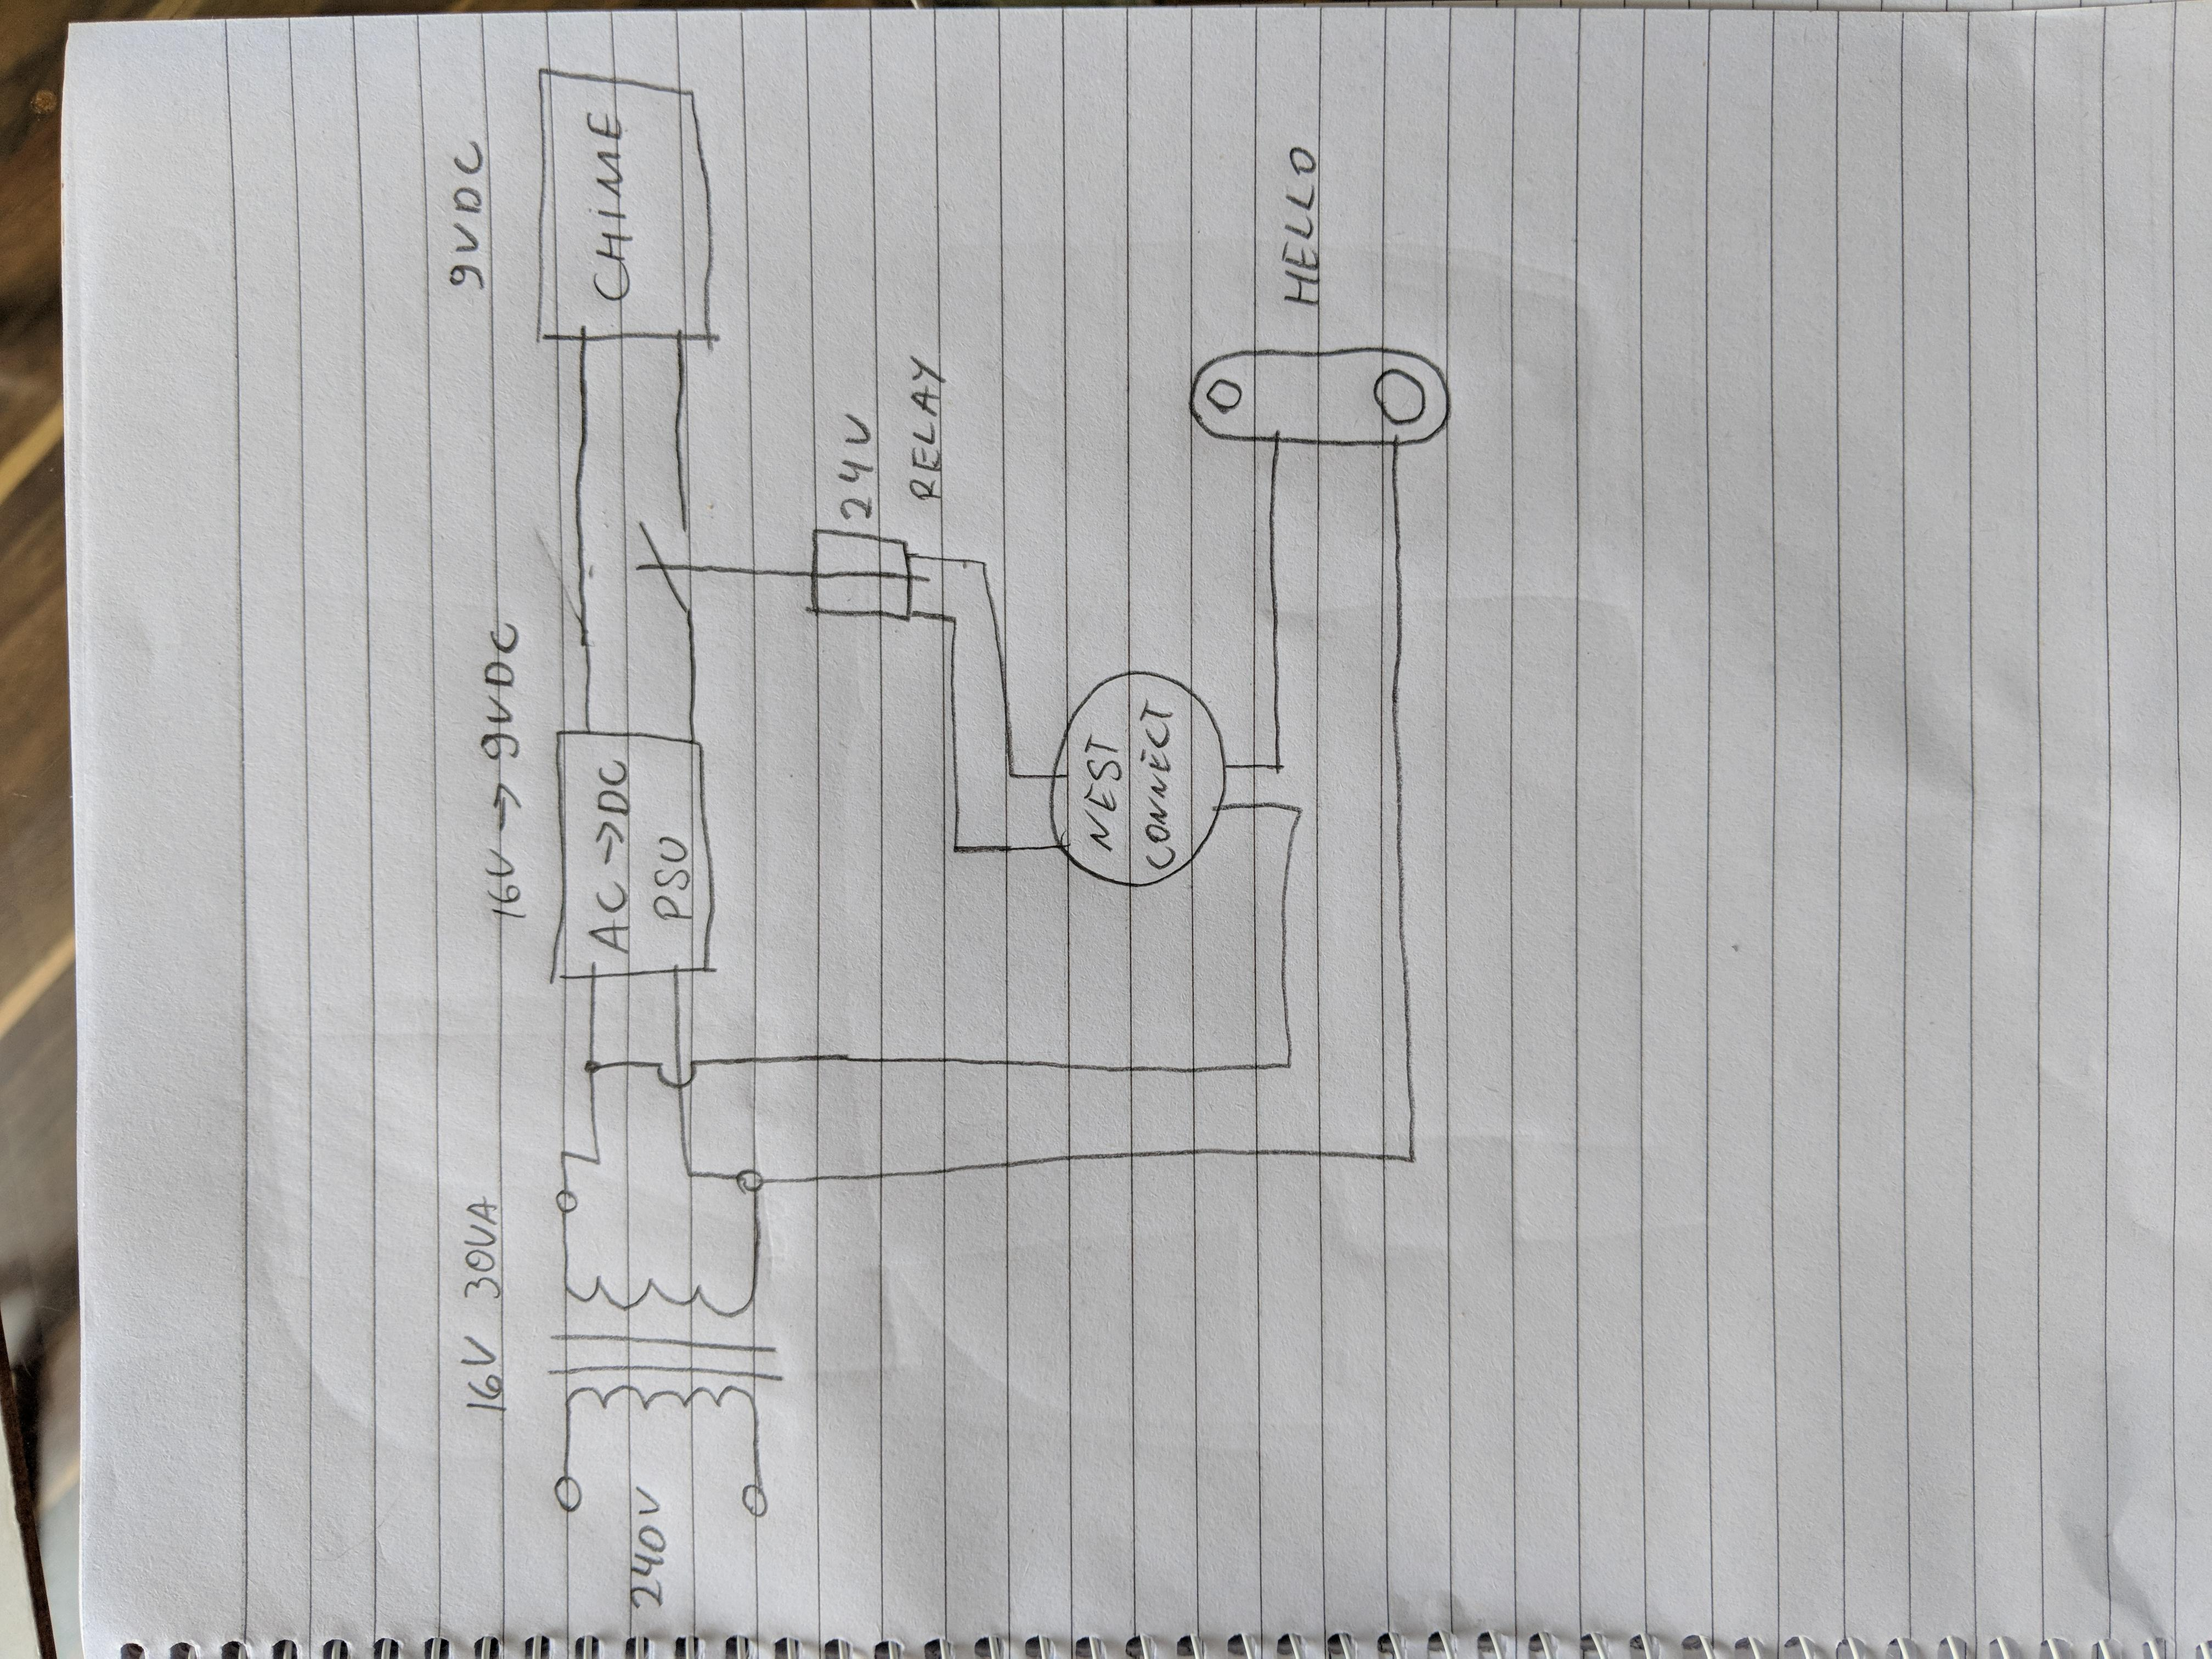 Nest Hello Wiring Diagram For Battery Operated Wired Doer Bell Uk : Nest - Nest Wiring Diagram Uk